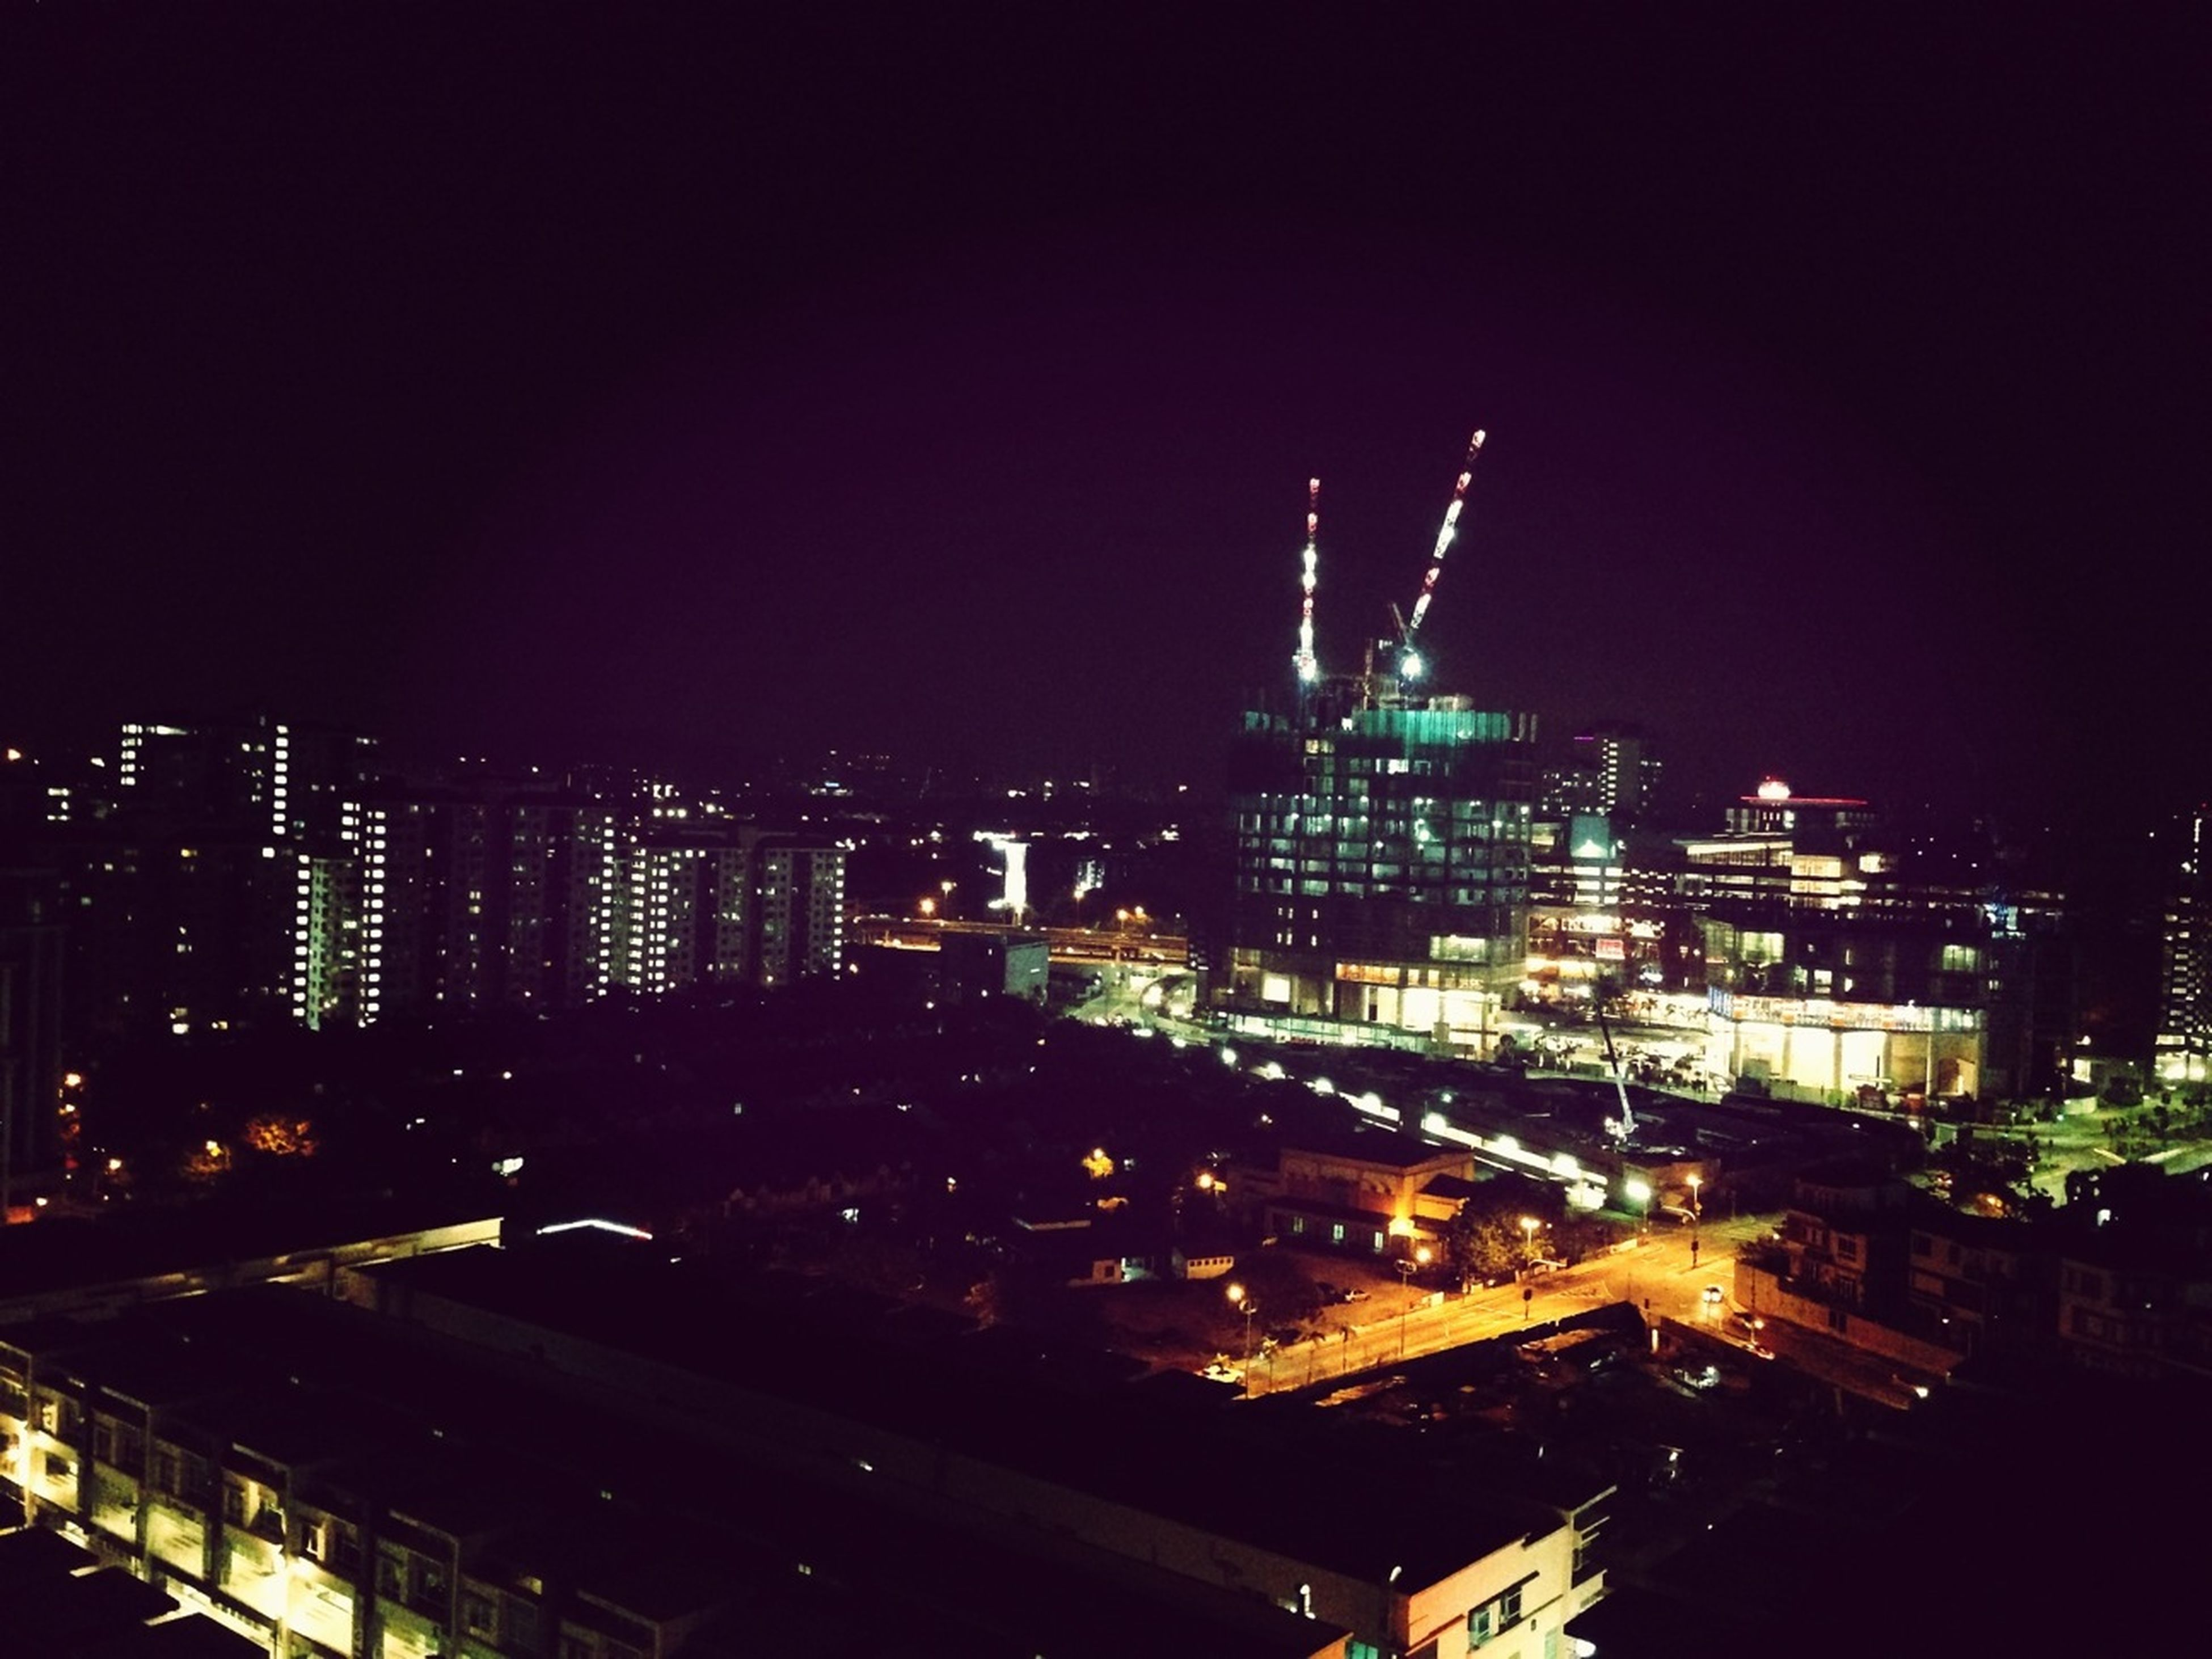 illuminated, night, city, building exterior, architecture, cityscape, built structure, skyscraper, high angle view, tower, tall - high, crowded, city life, modern, office building, copy space, urban skyline, sky, residential district, development